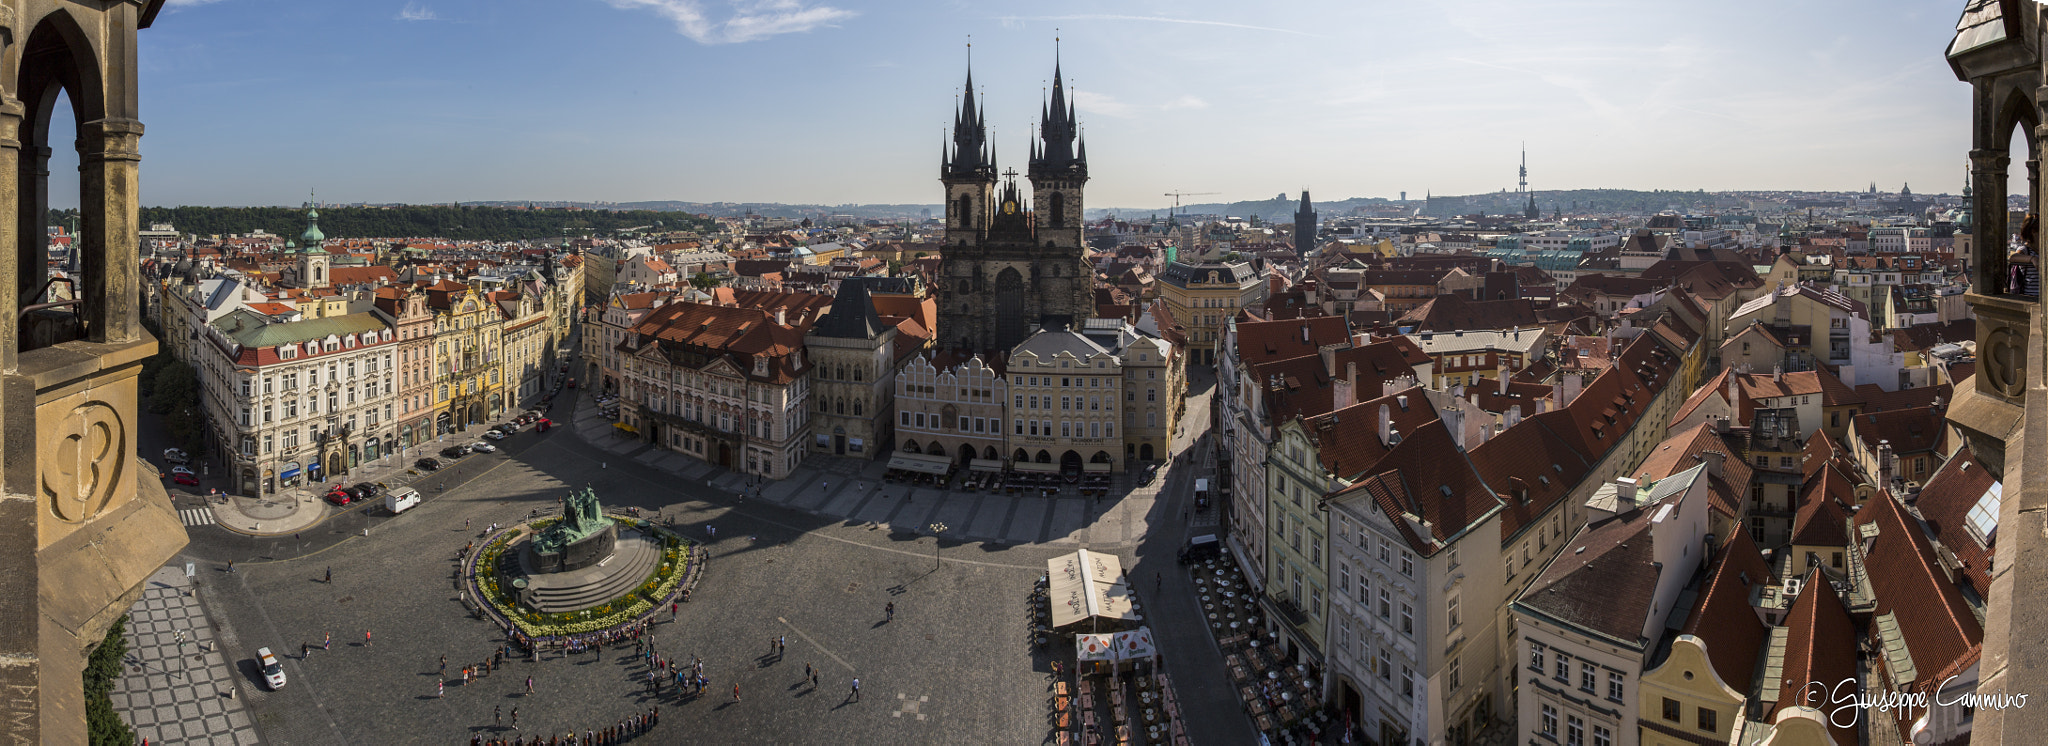 Photograph Prague - View on the old town square by Giuseppe Cammino on 500px